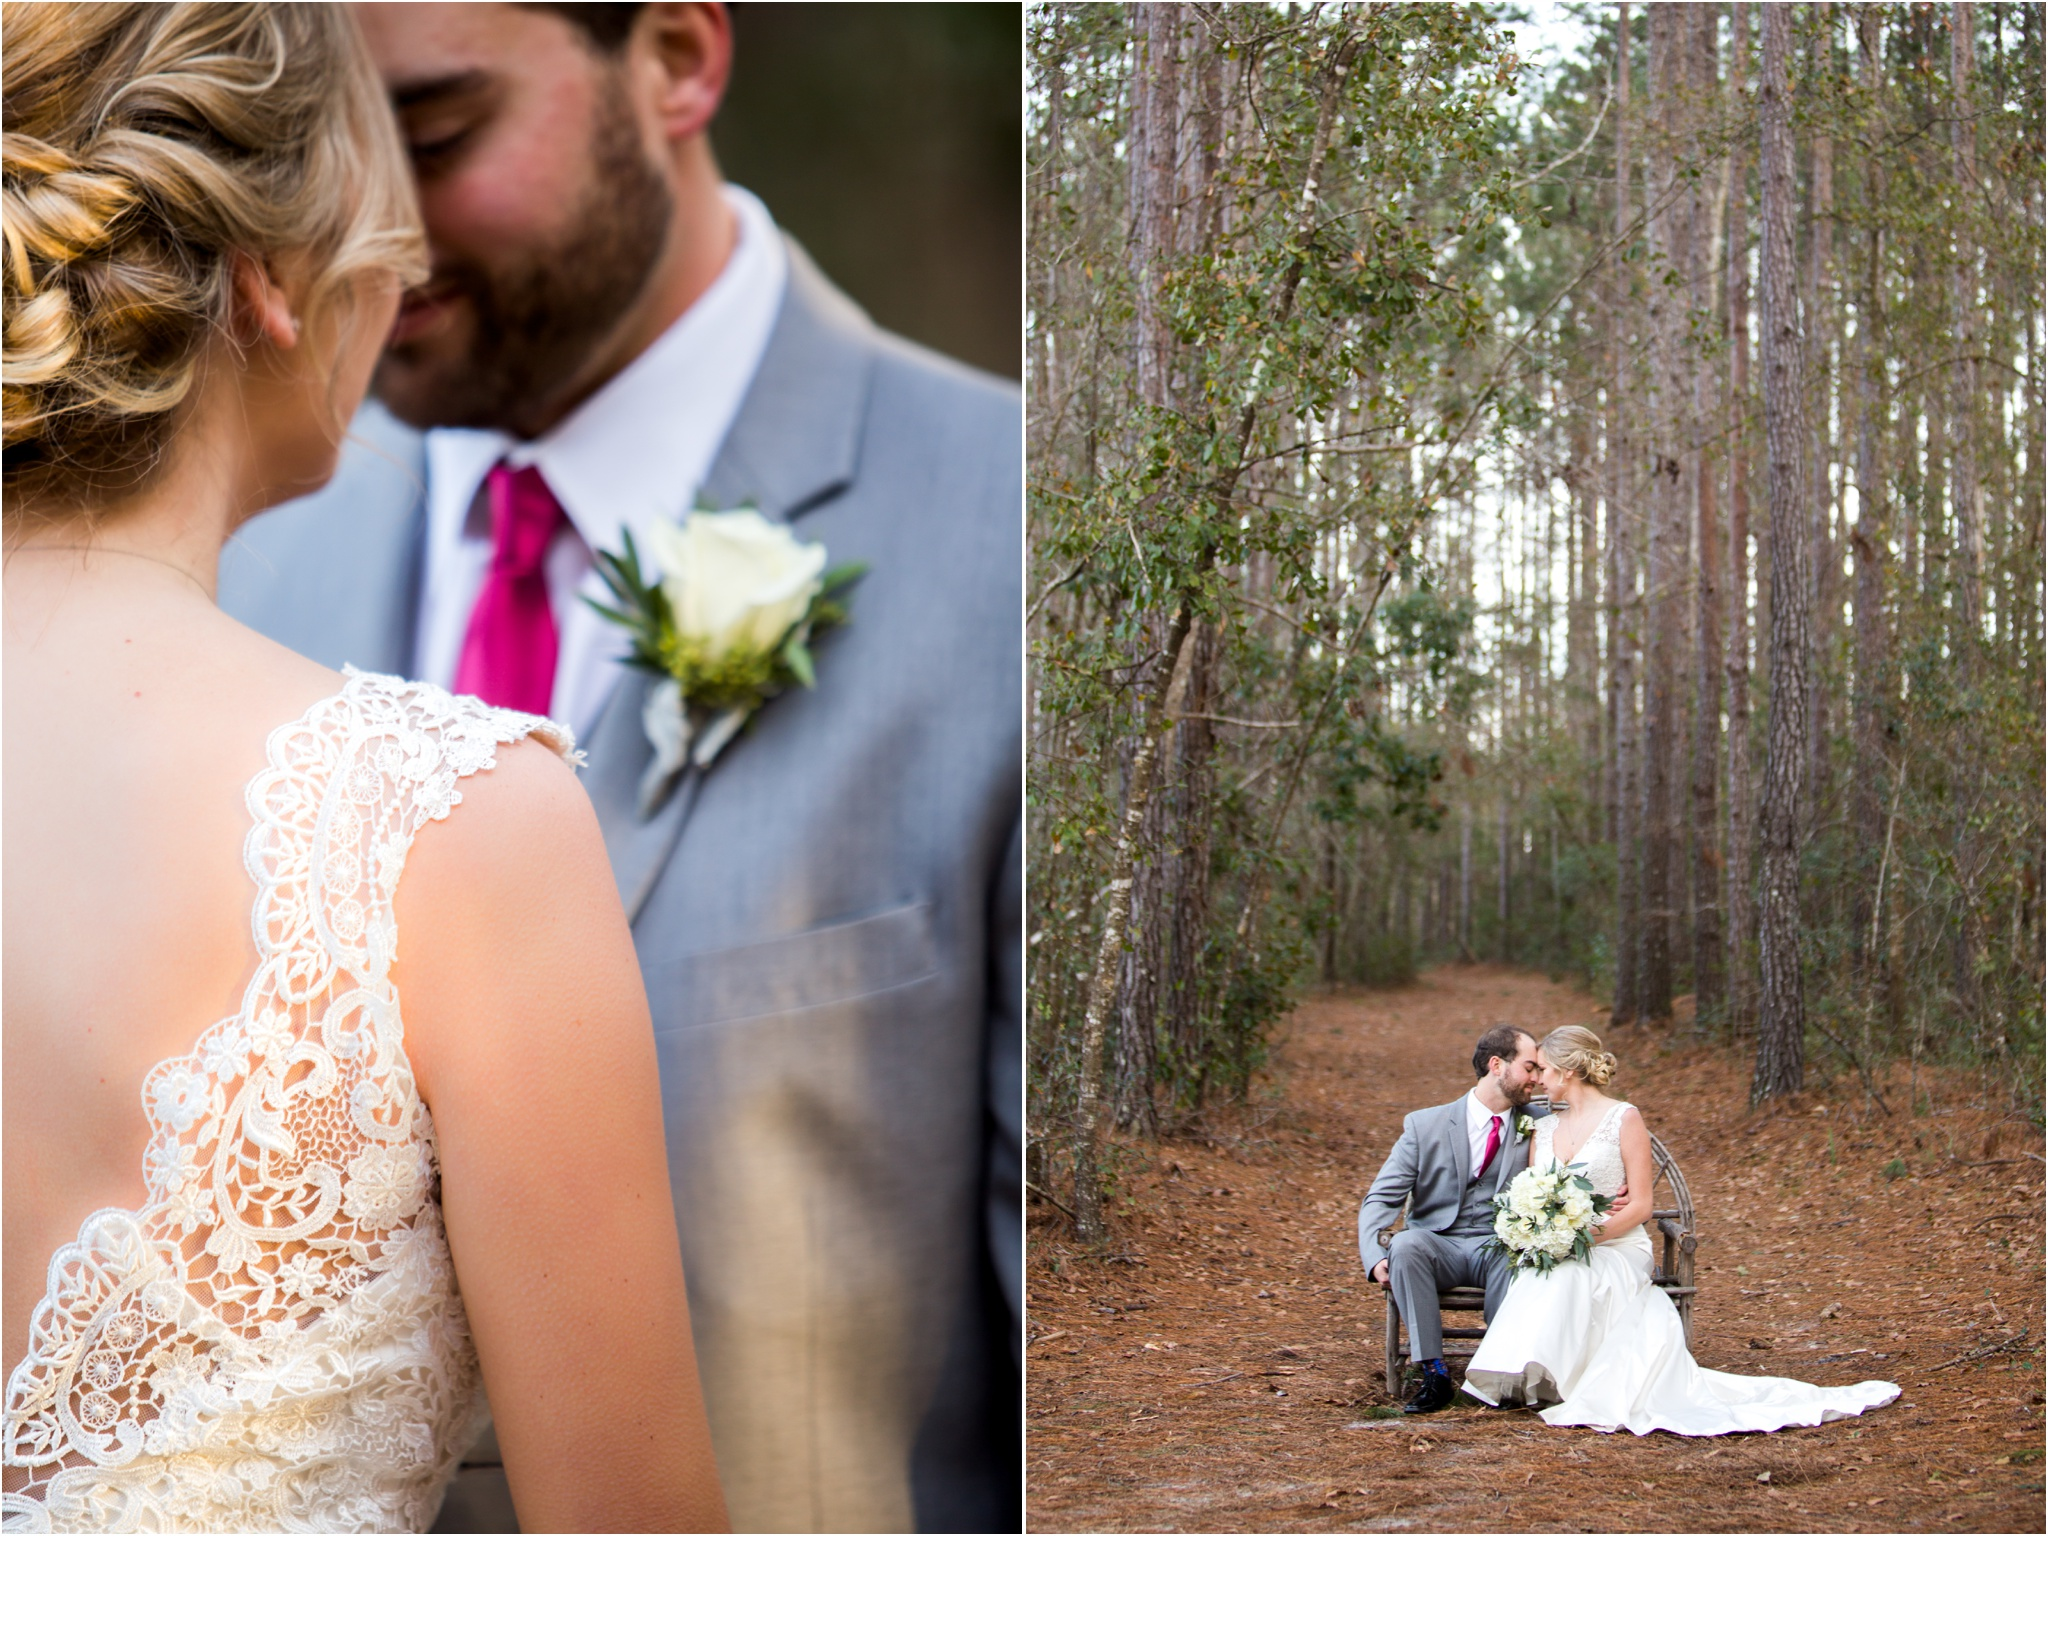 Rainey_Gregg_Photography_St._Simons_Island_Georgia_California_Wedding_Portrait_Photography_0500.jpg